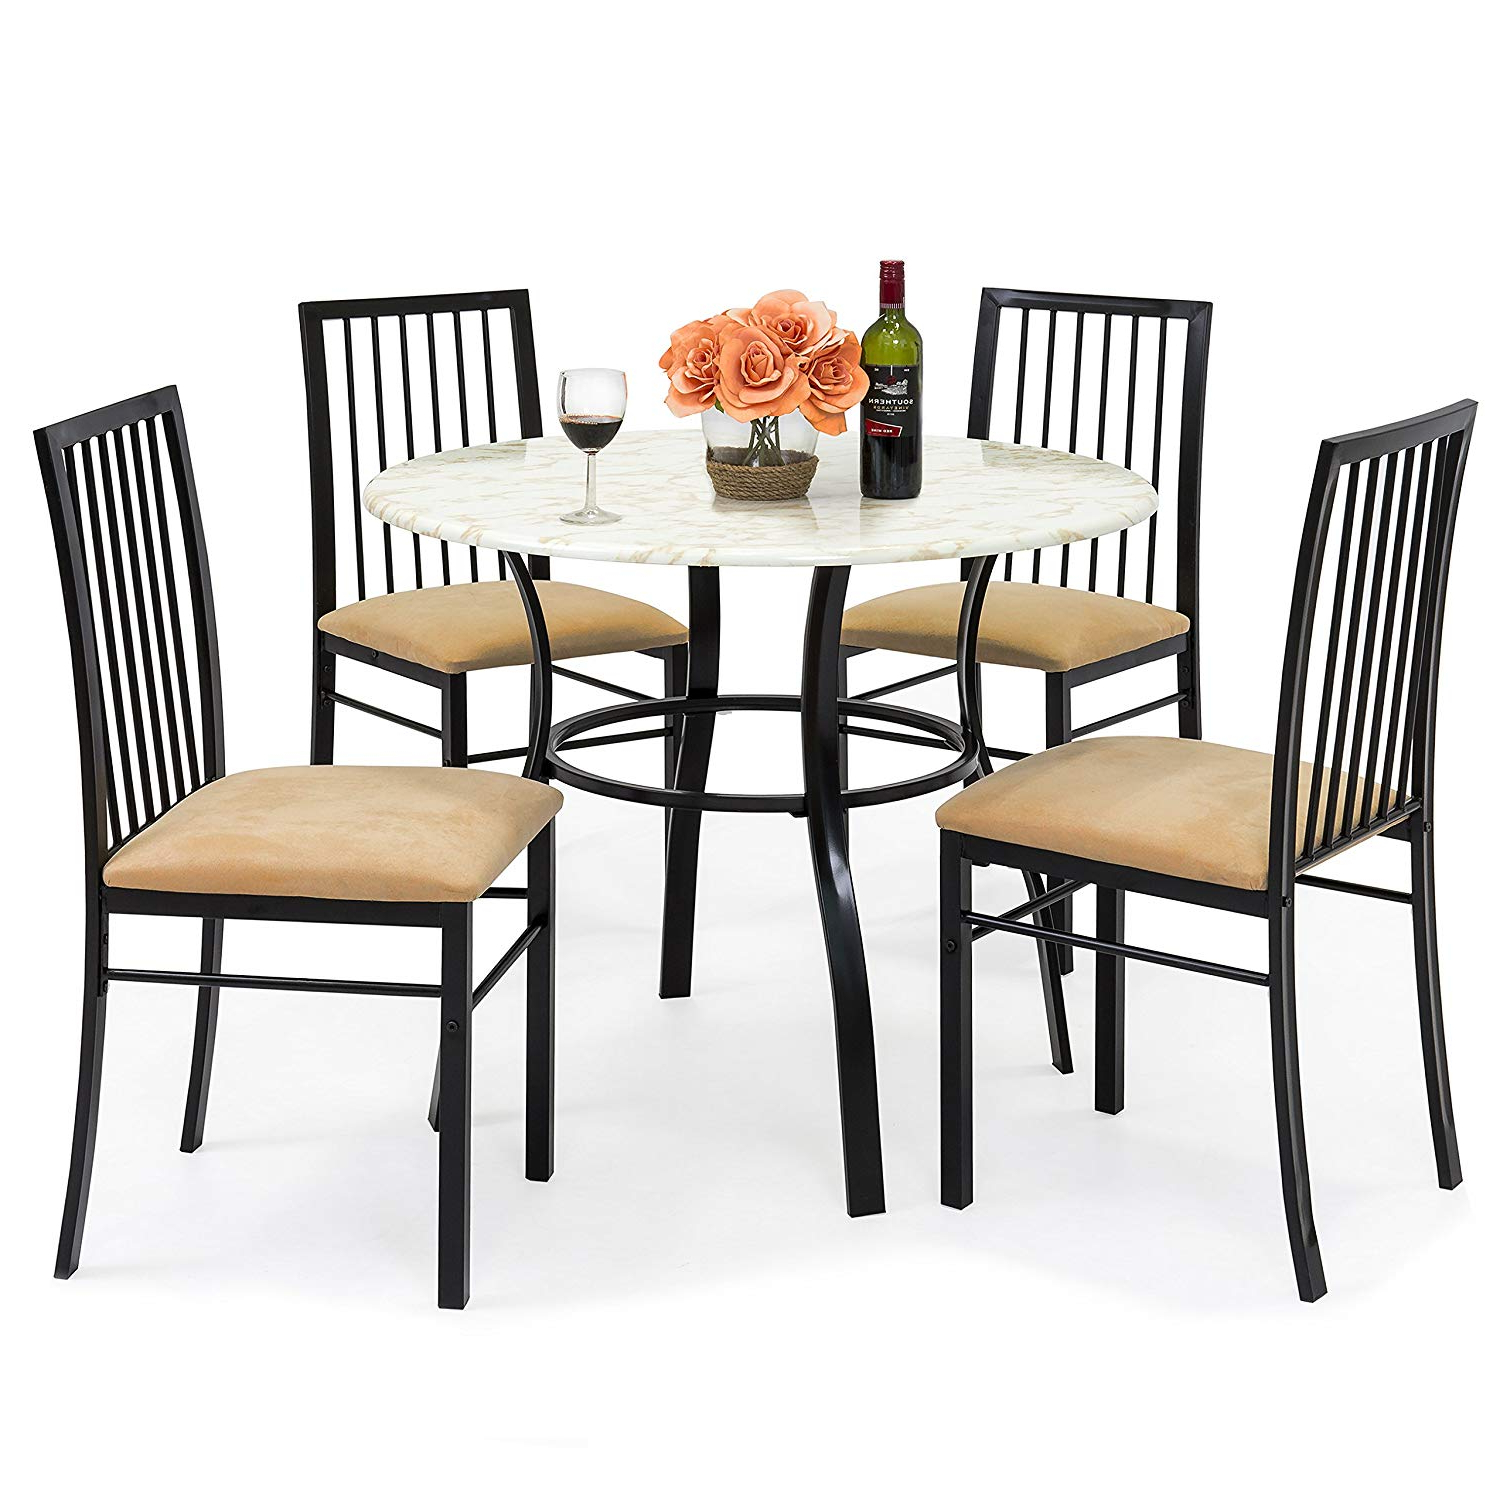 2020 Amazon – Best Choice Products 5 Piece Faux Marble Top Dining Throughout Evellen 5 Piece Solid Wood Dining Sets (Set Of 5) (View 1 of 25)